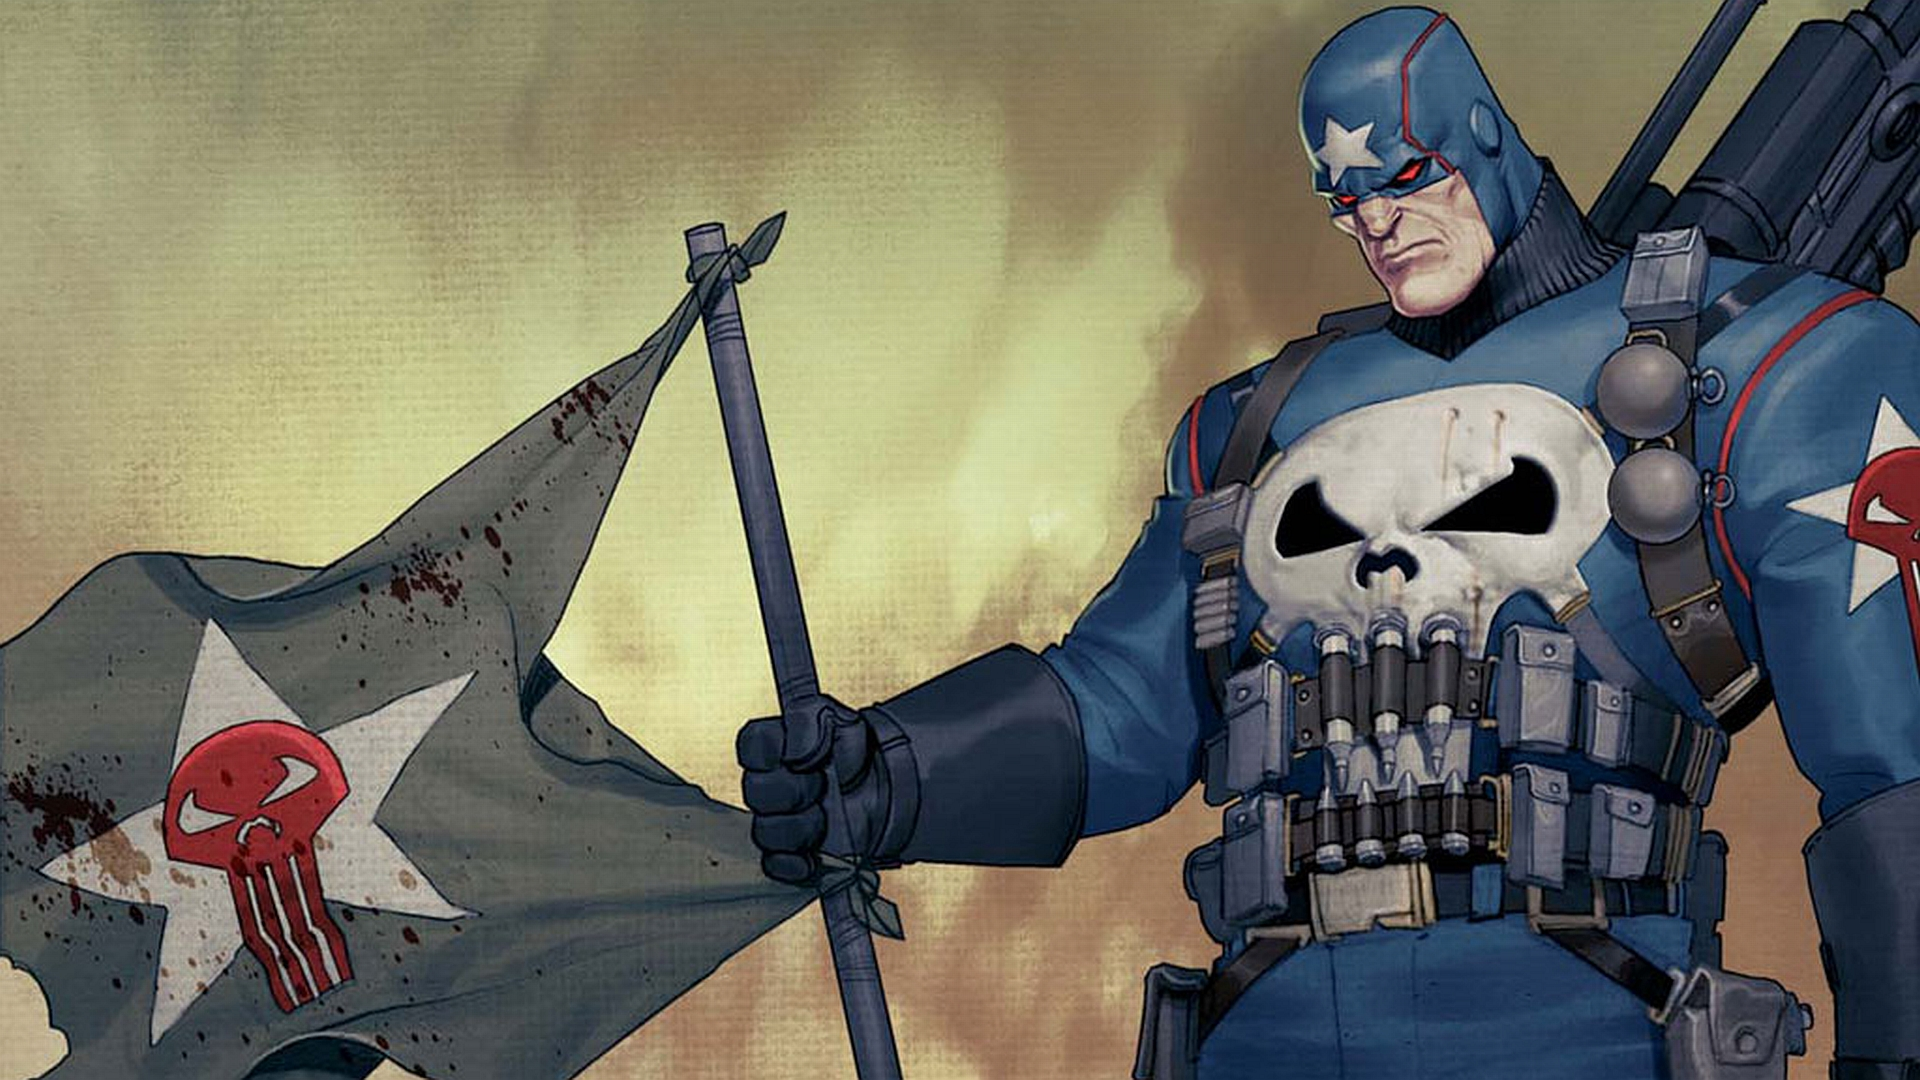 the punisher with flag Wallpaper Background 20253 1920x1080